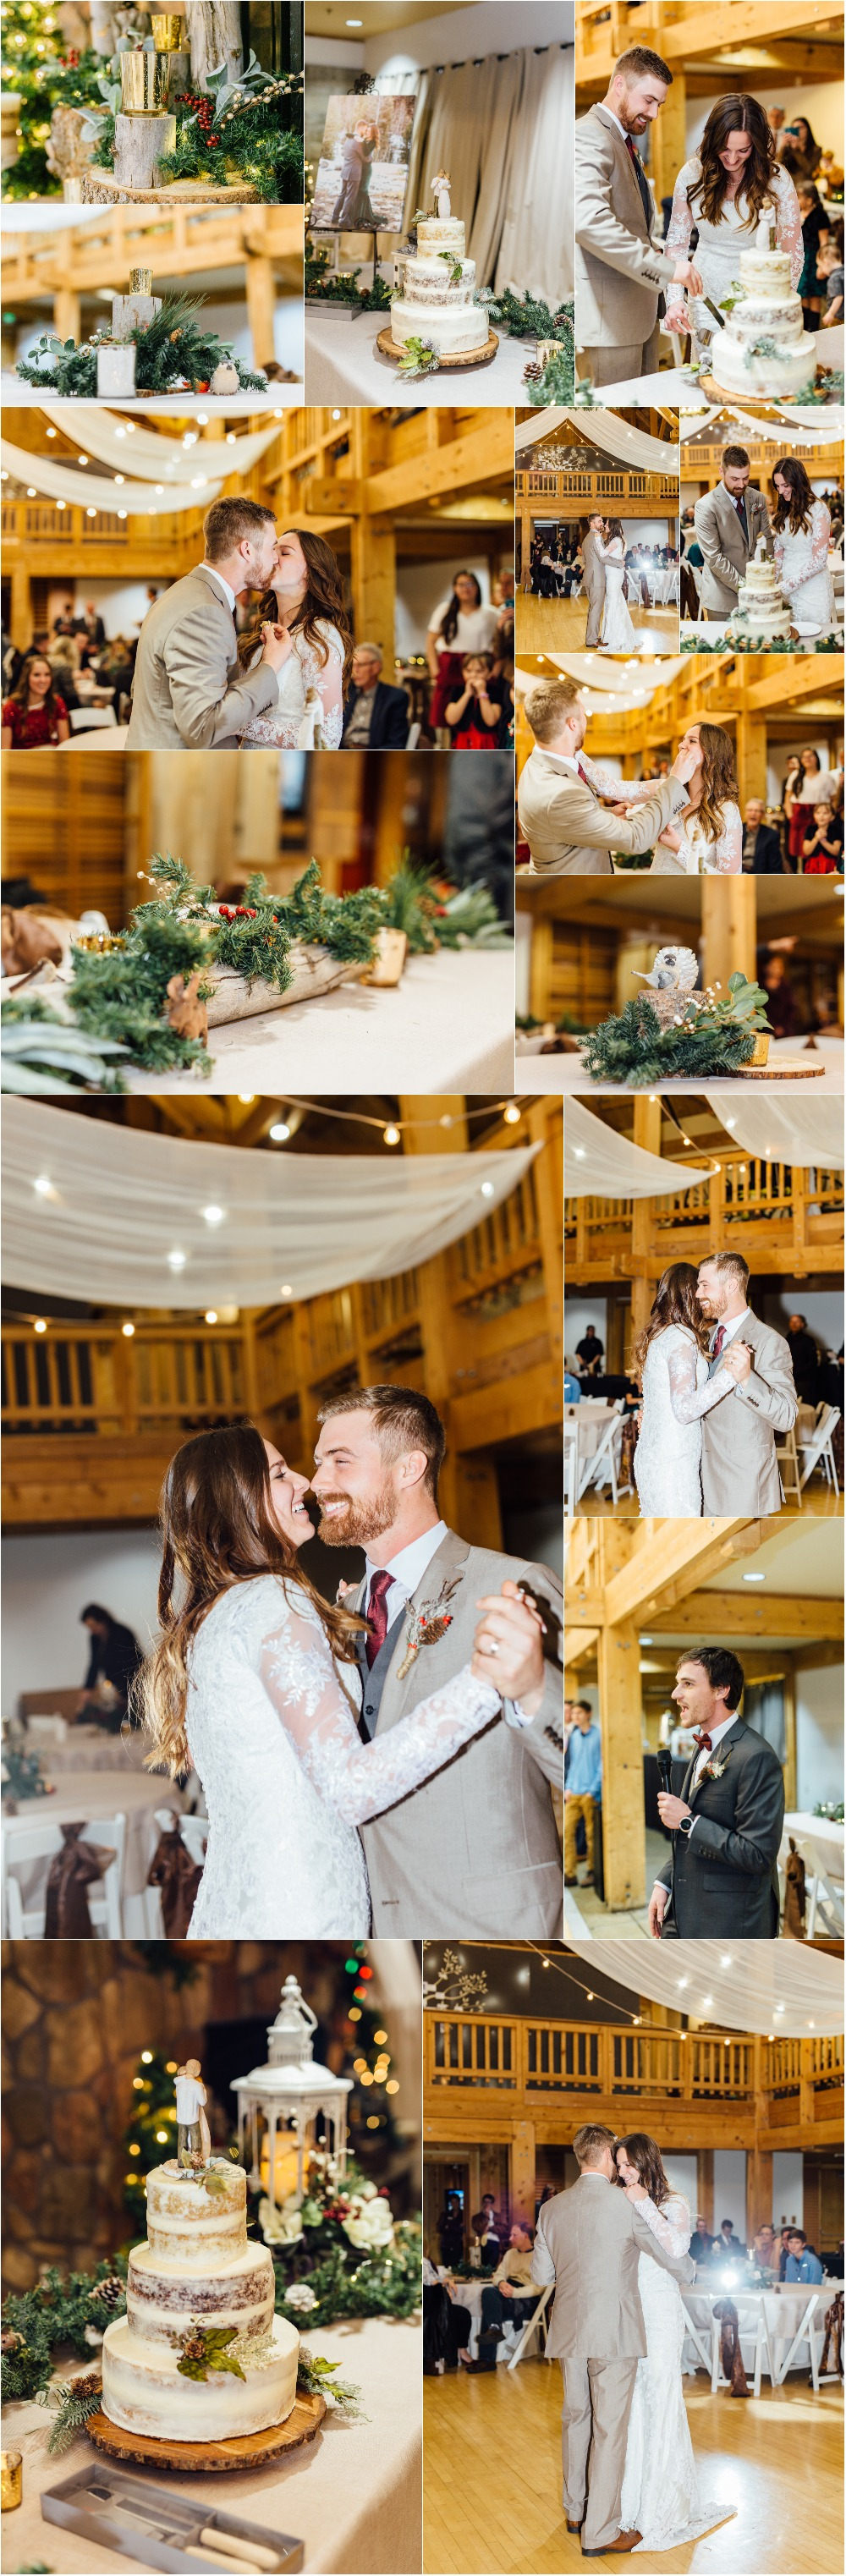 Wheeler Historic Farm Wedding Reception Photographer